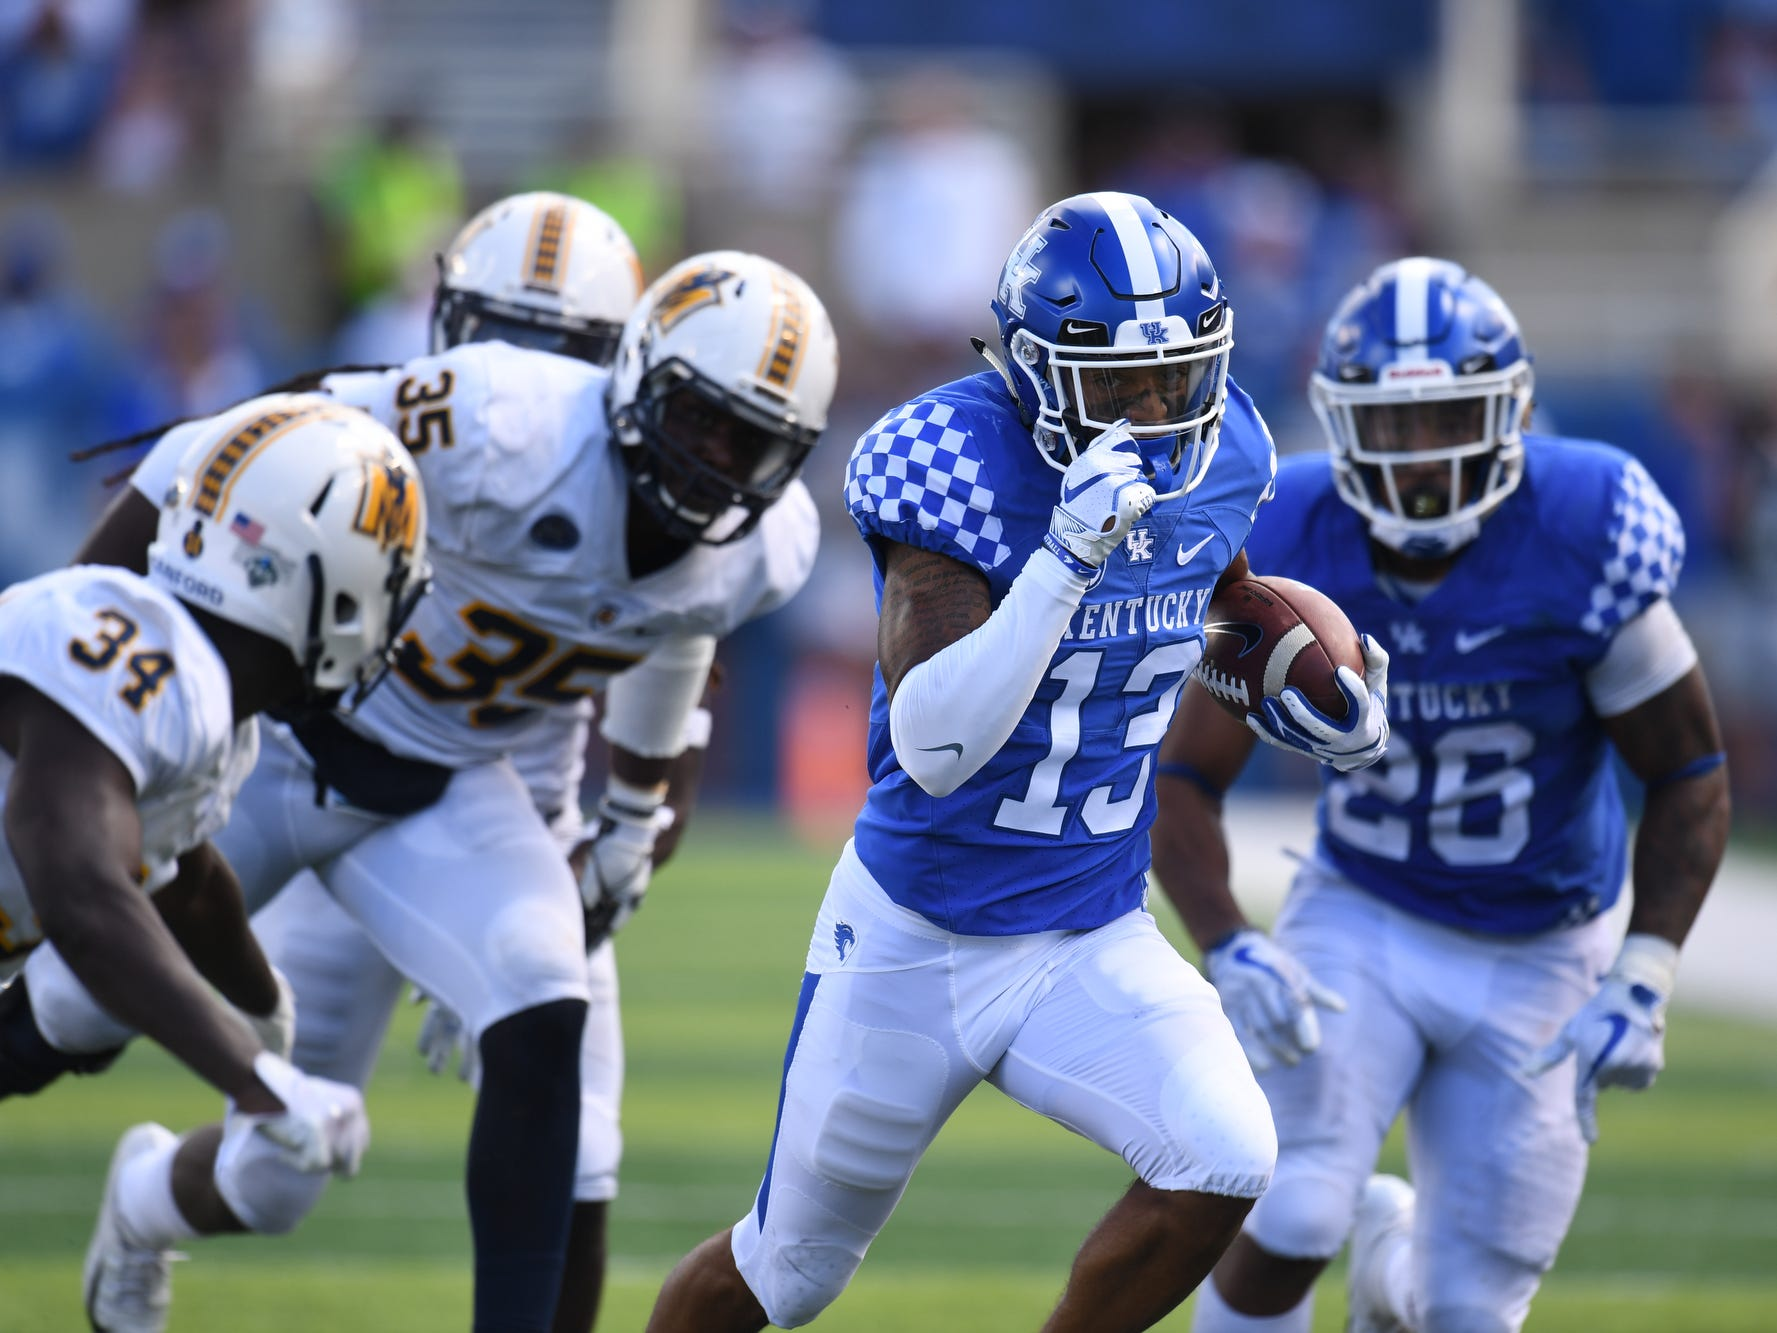 UK wide receiver Zy'Aire Hughes scores a touchdown on a double reverse during the University of Kentucky football game against Murray State at Kroger Field in Lexington, Kentucky, on Saturday, Sept. 15, 2018.